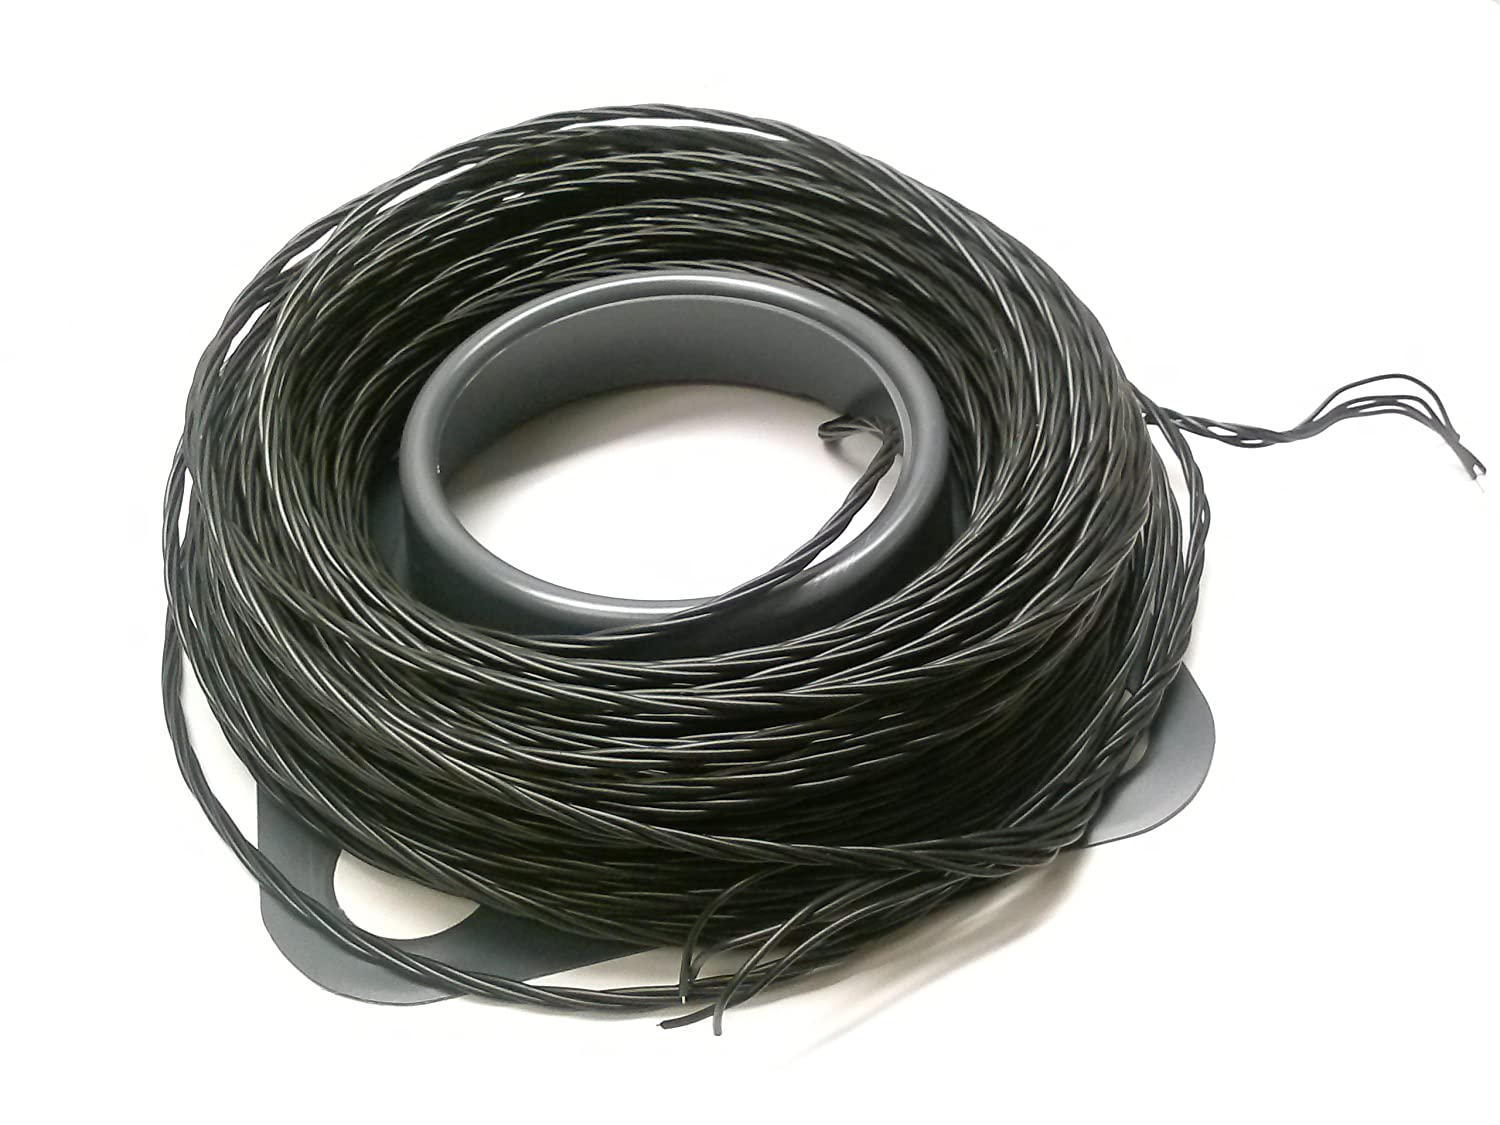 20 GAUGE GENERAL PURPOSE SIGNAL WIRE 4 CONDUCTOR (2 PAIR) x 250 FEET ...